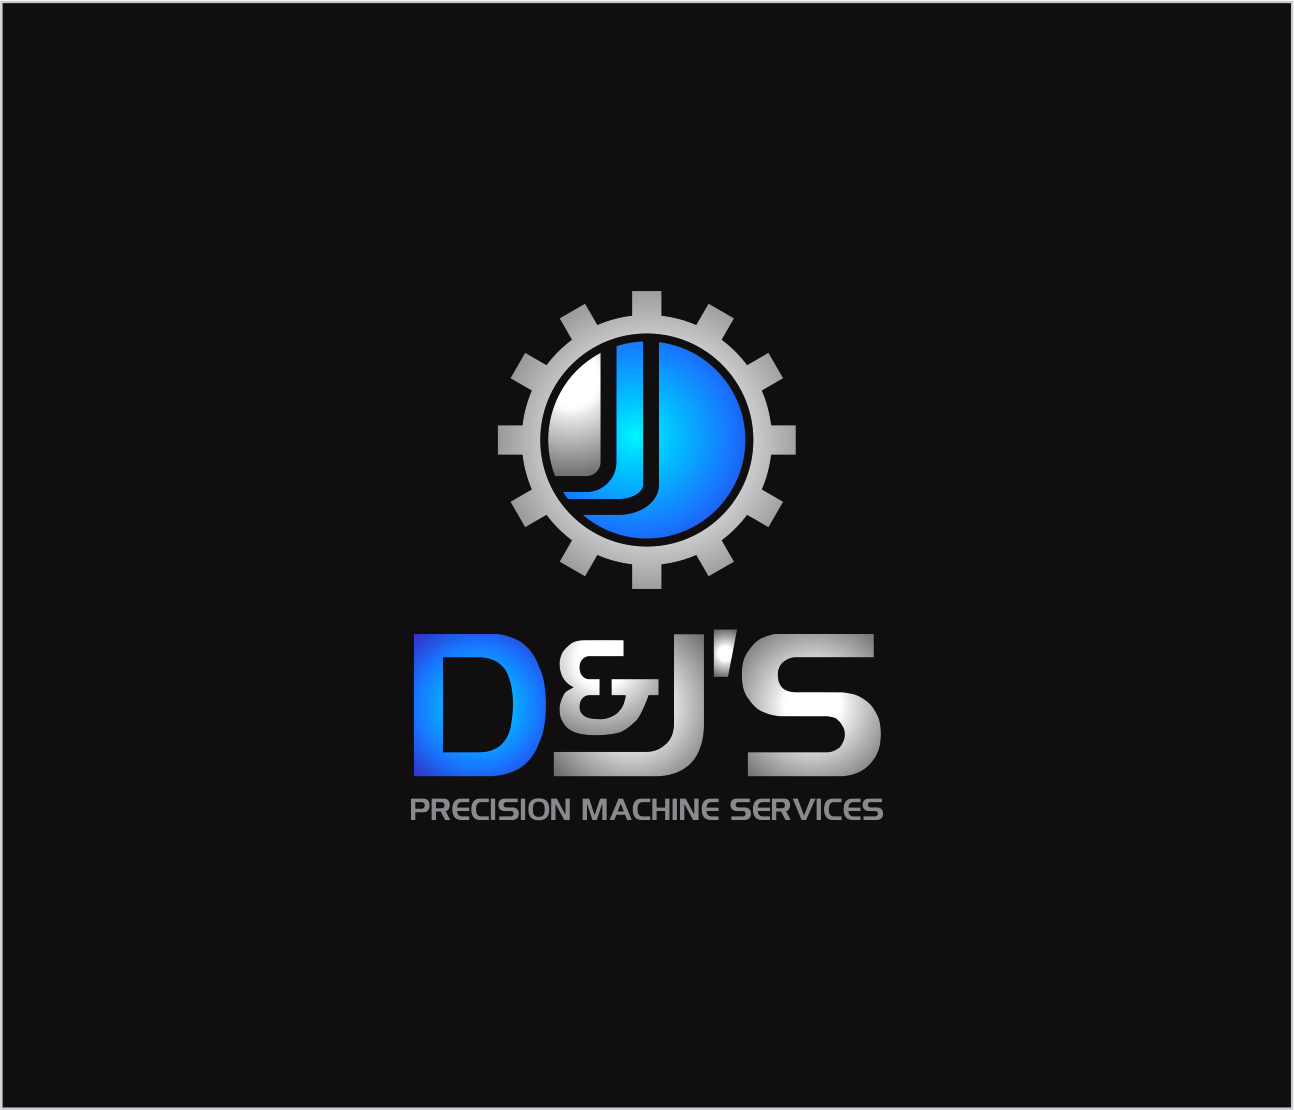 Logo Design by Armada Jamaluddin - Entry No. 107 in the Logo Design Contest Creative Logo Design for D & J's Precision Machine Services.